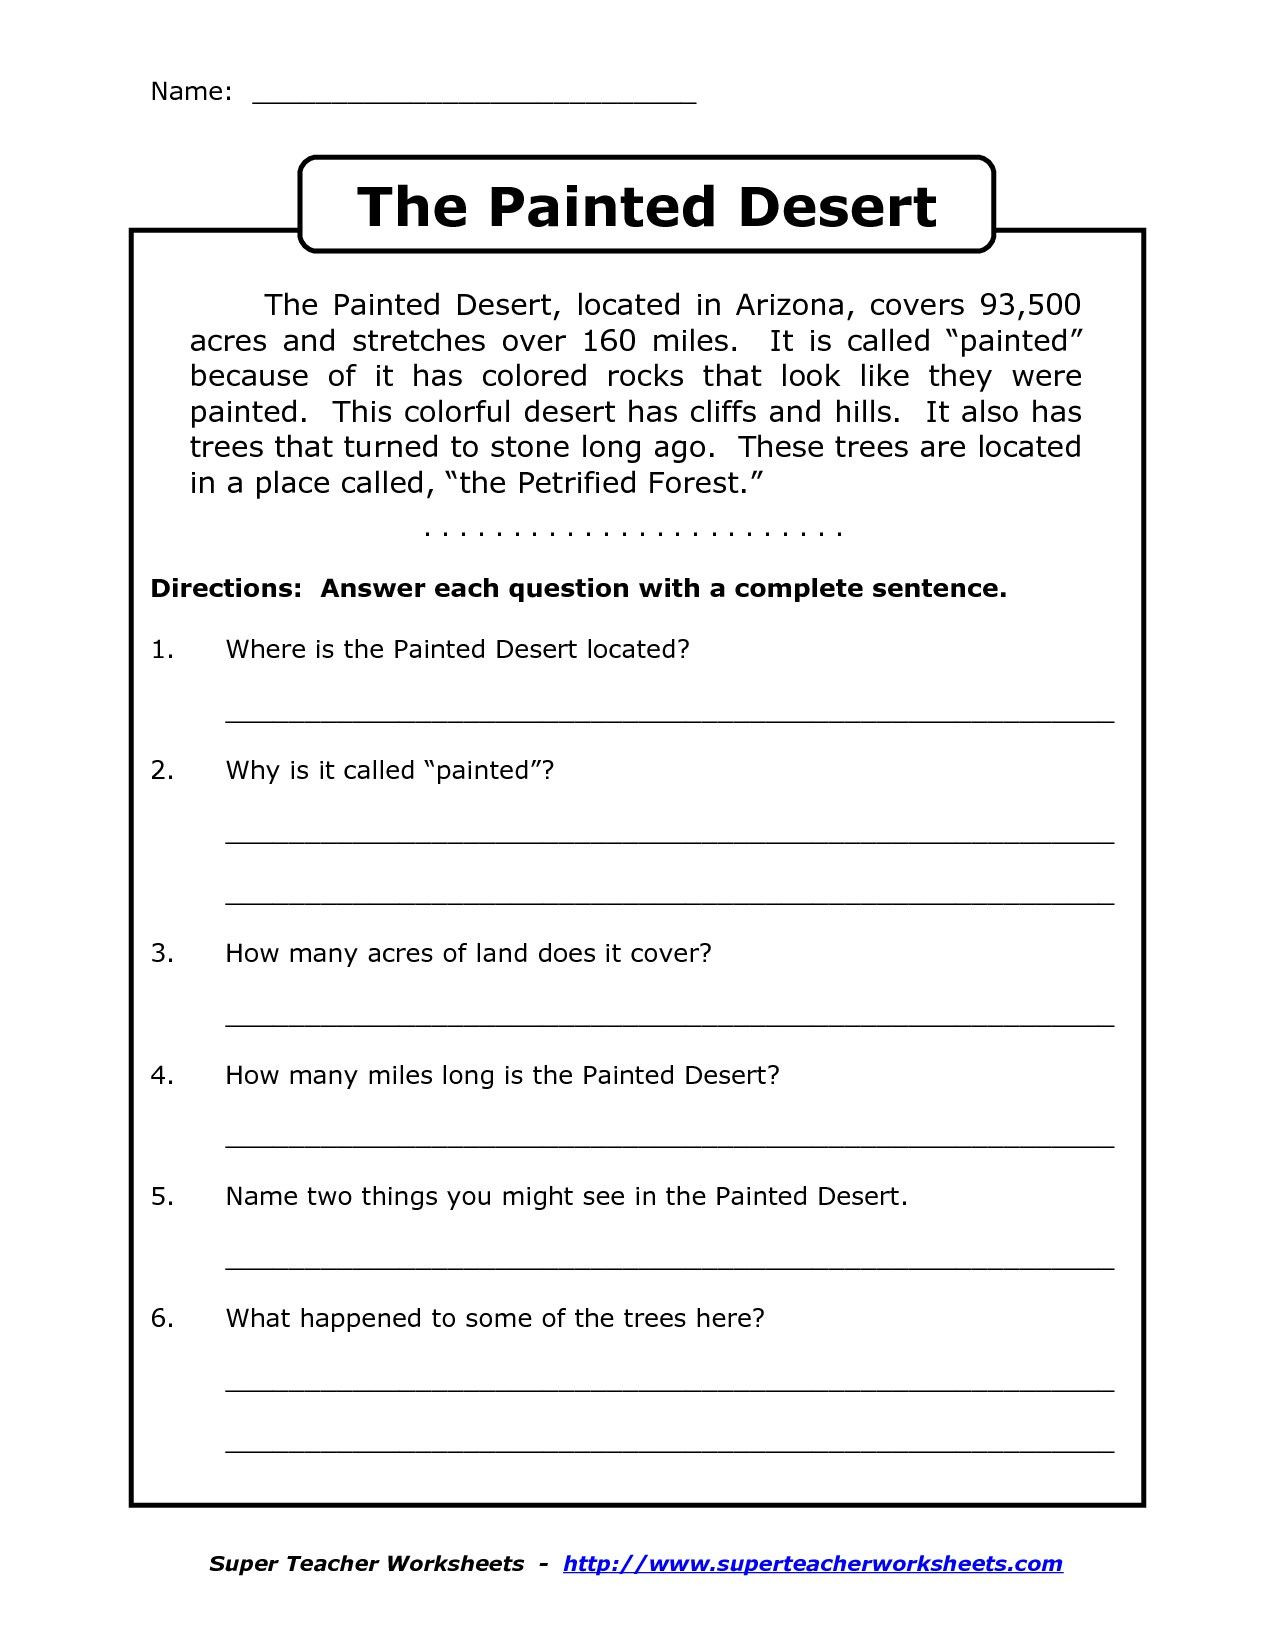 Editing Worksheet 3rd Grade Prehension Worksheet for 1st Grade Y2 P3 the Painted